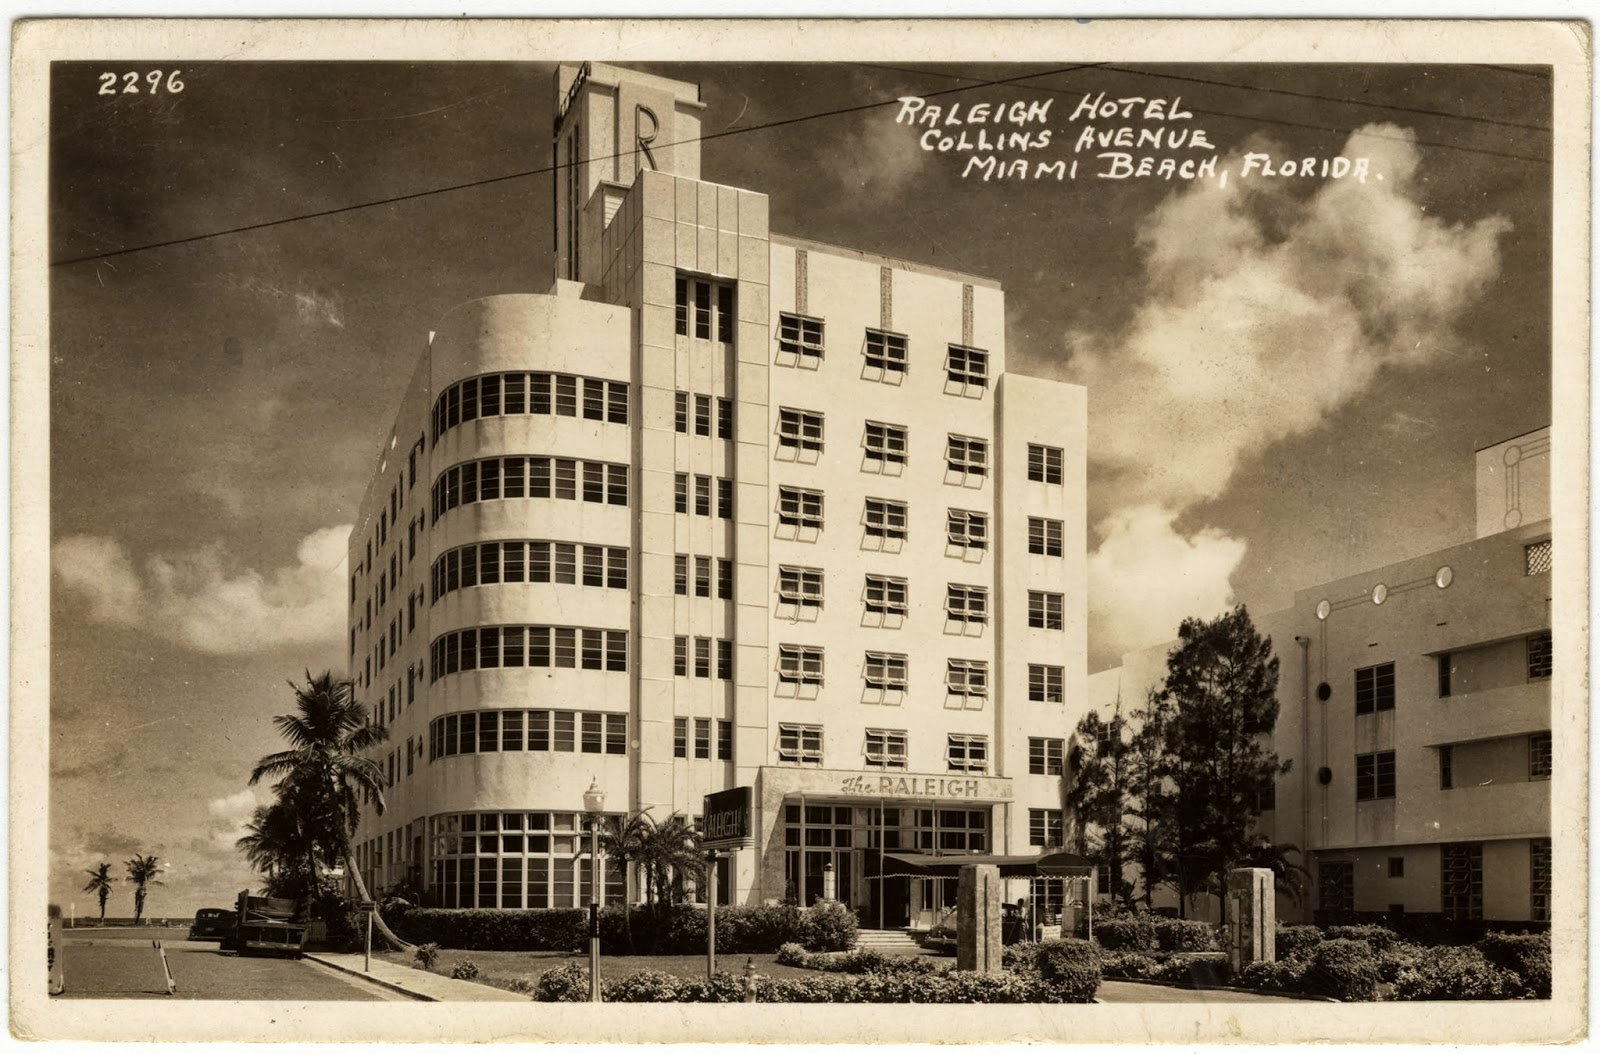 Raleigh Hotel Miami Beach